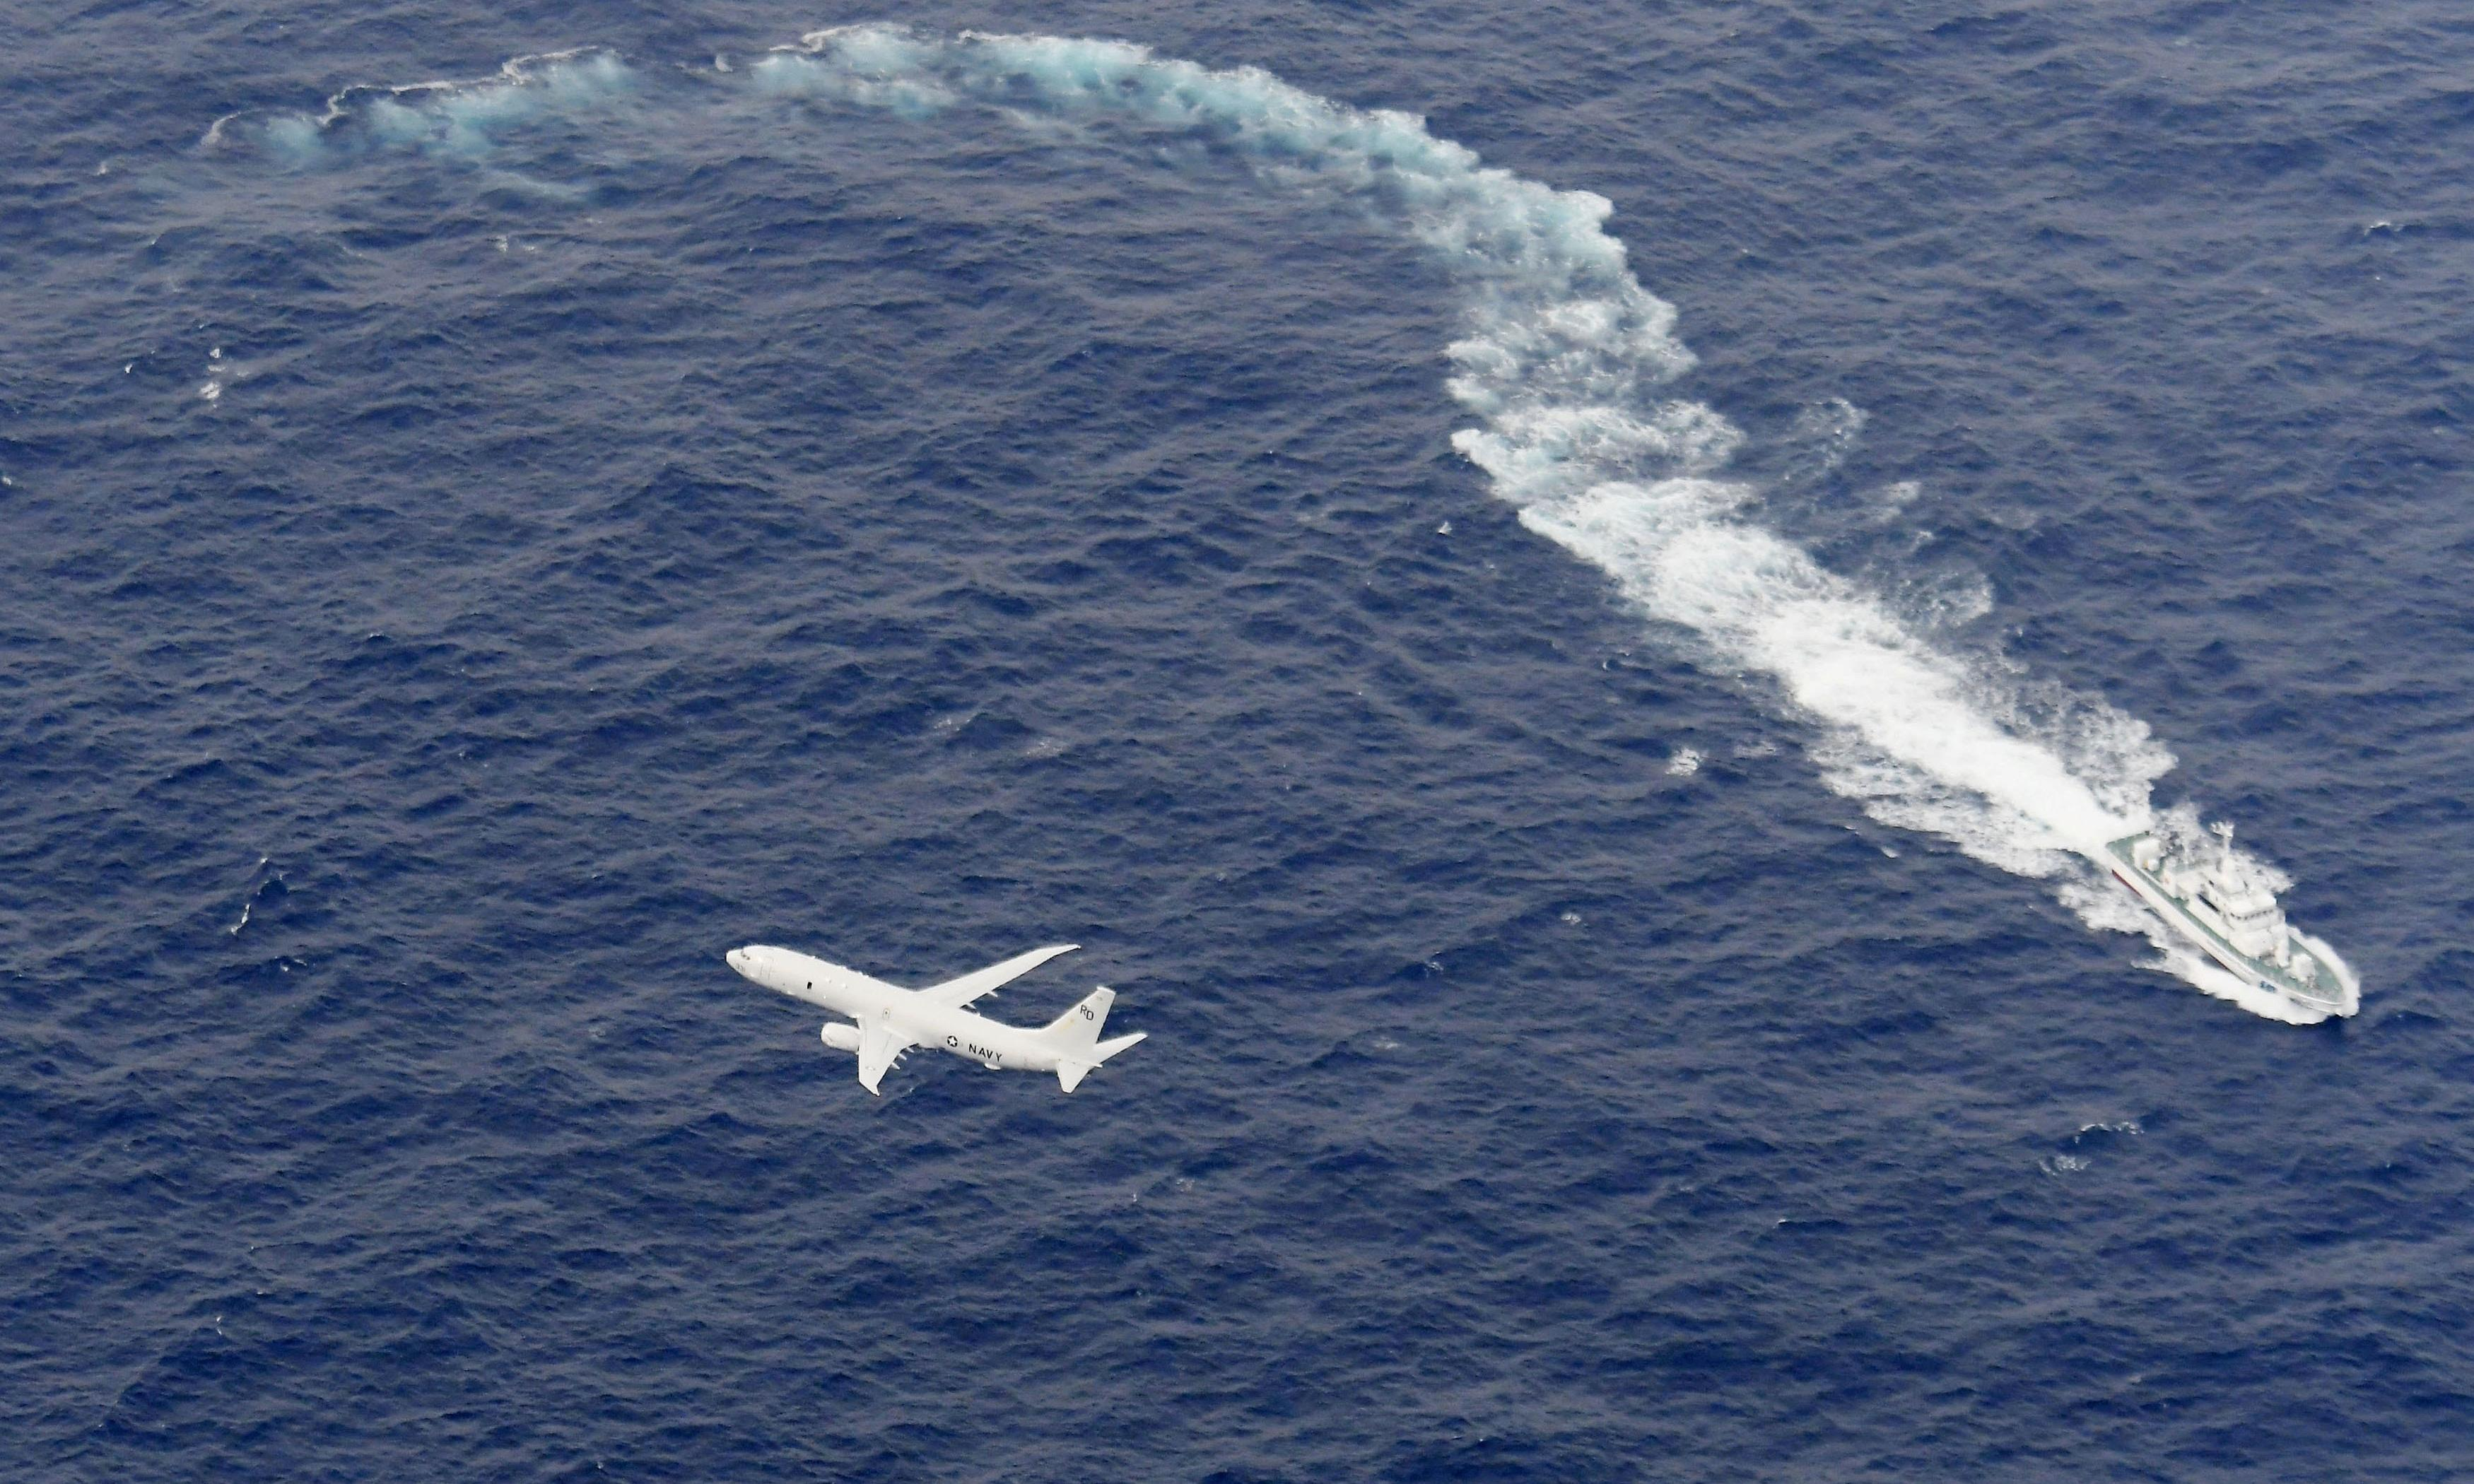 US military: one of two crew recovered off Japan after mid-air collision is dead